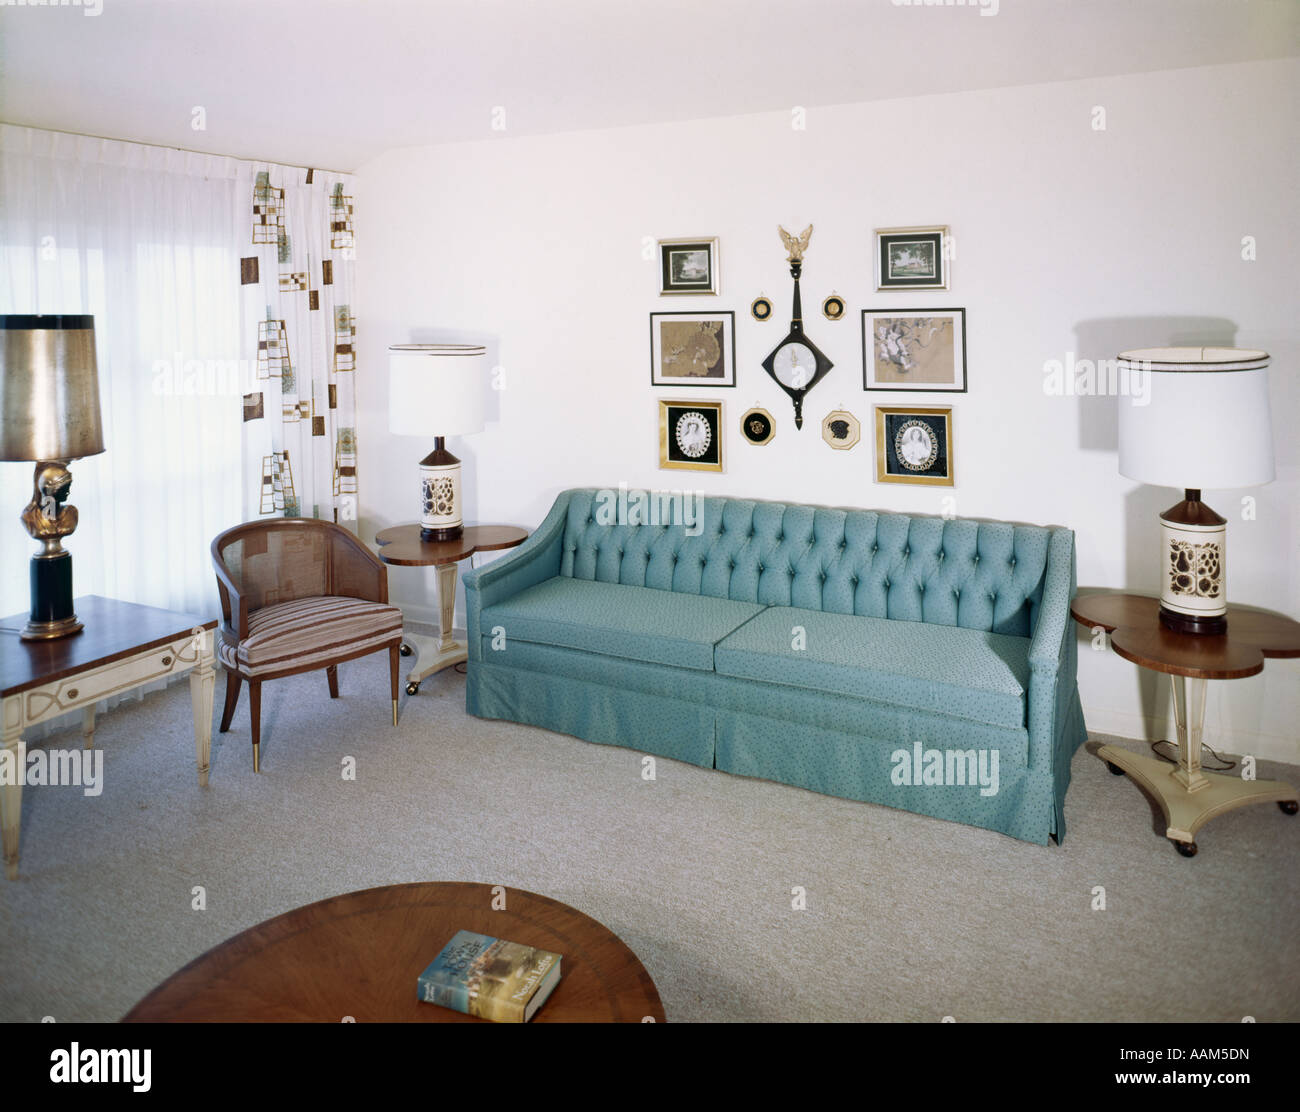 1950s 1960s interior living room decor couch sofa chair - 1950 s living room decorating ideas ...